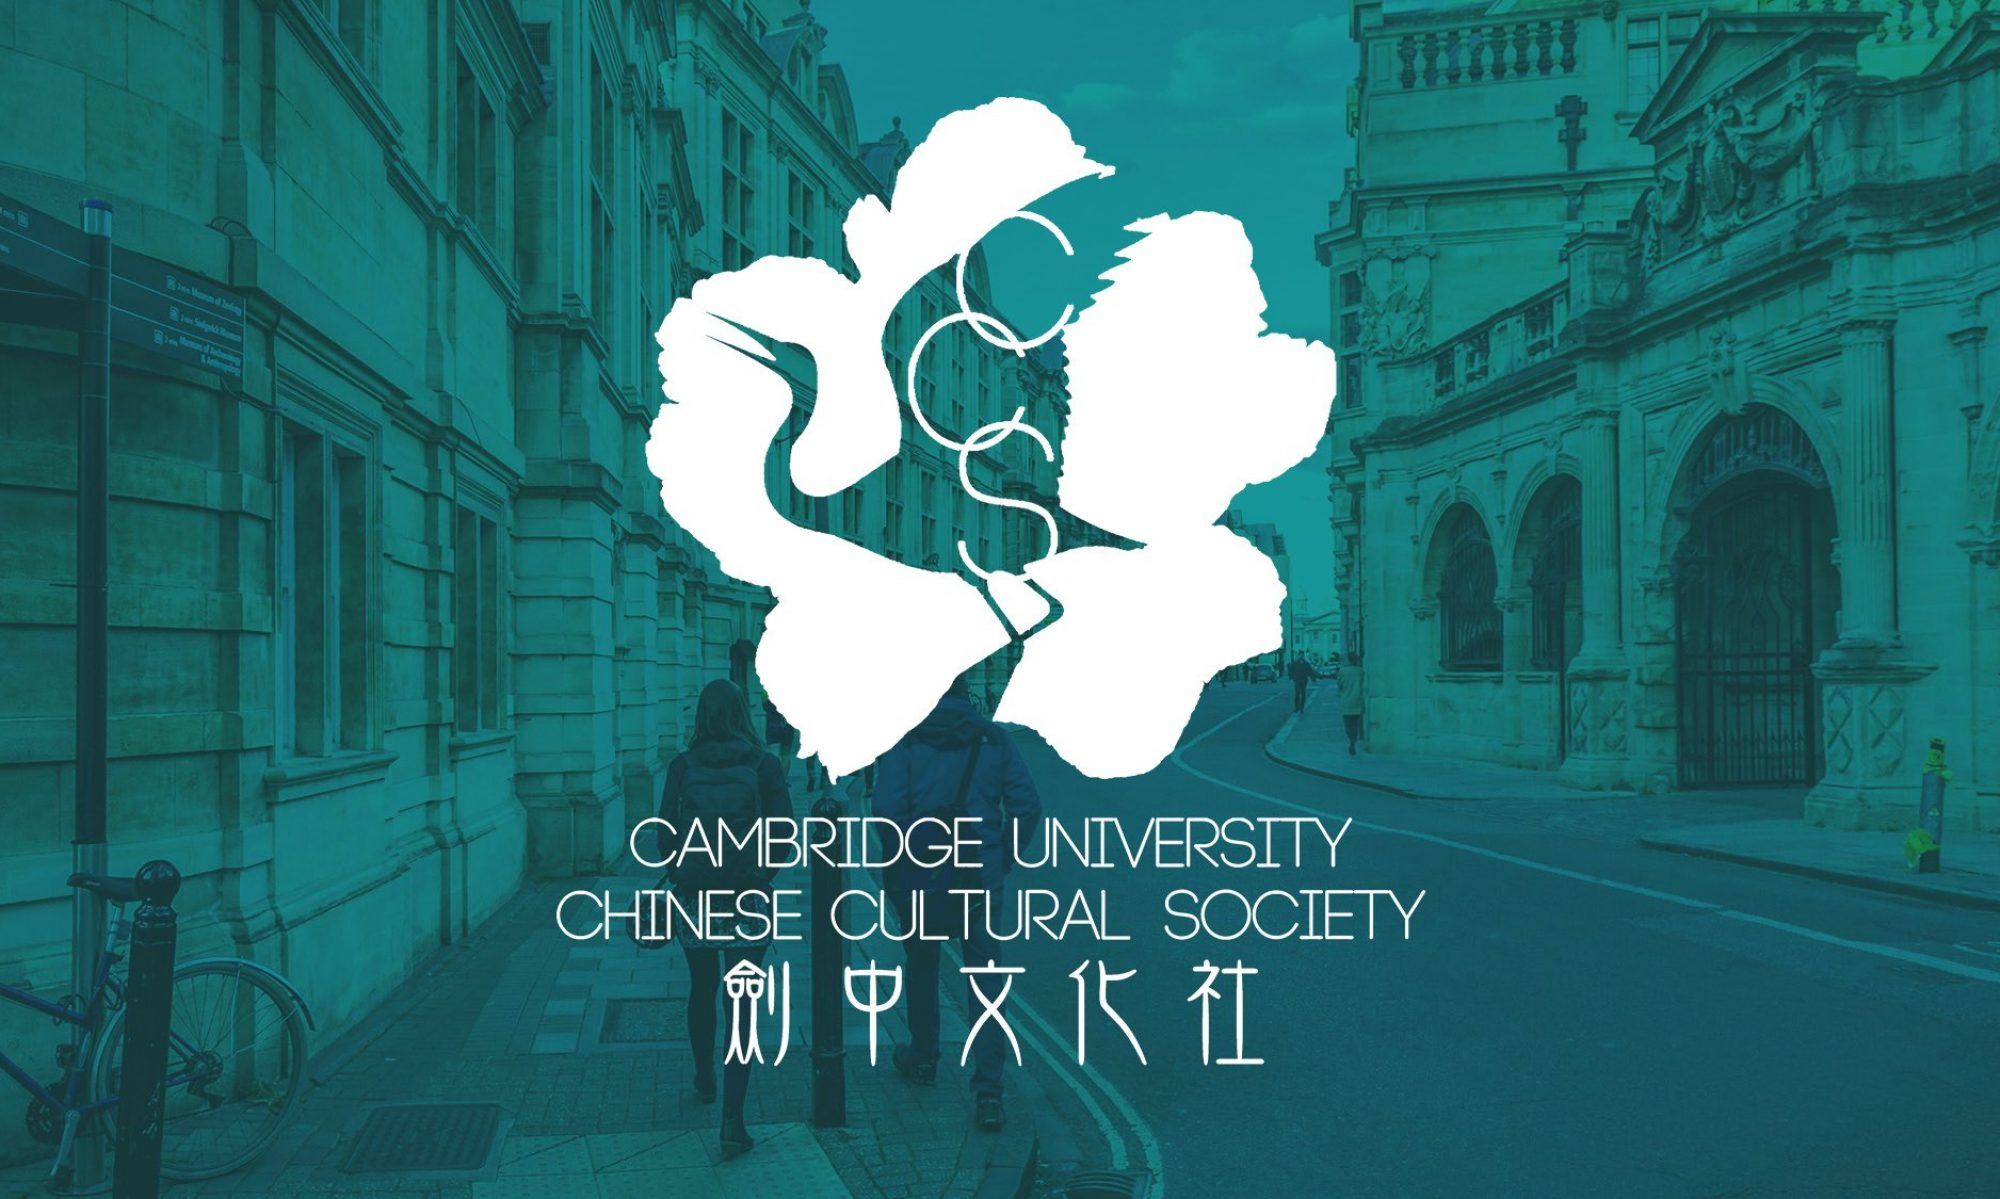 Cambridge University Chinese Cultural Society